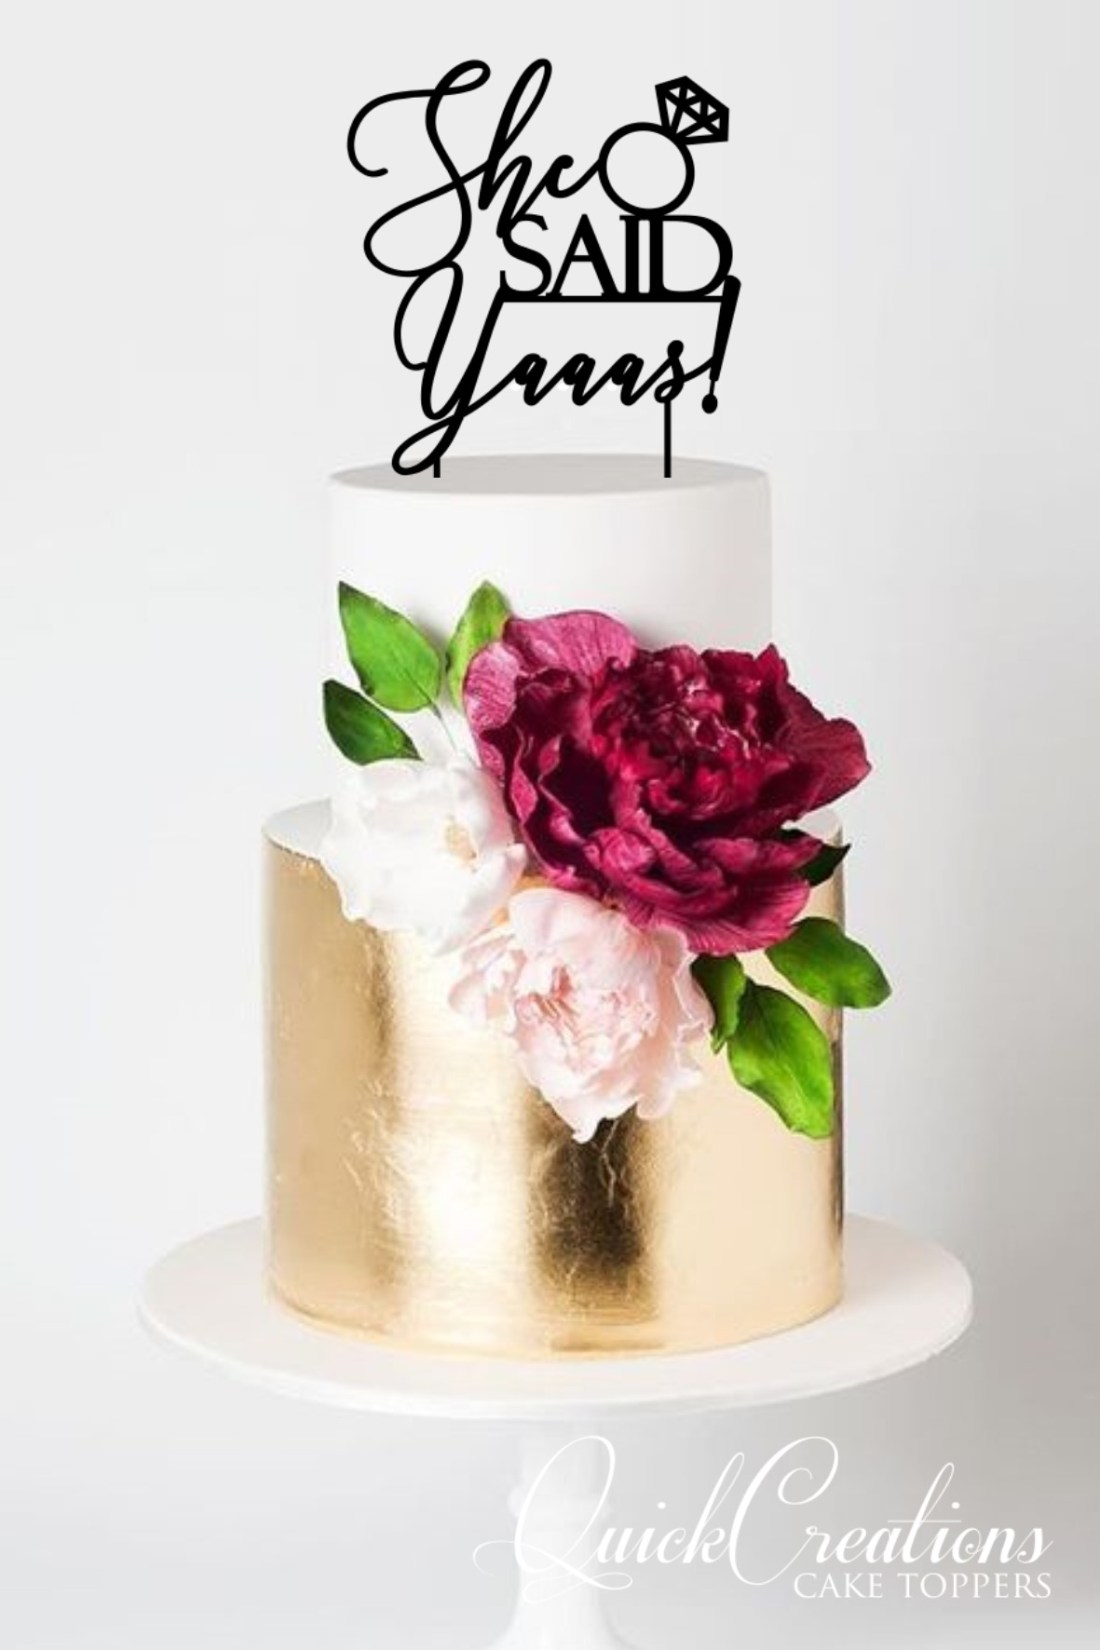 Quick Creations Cake Topper - She Said Yaaas